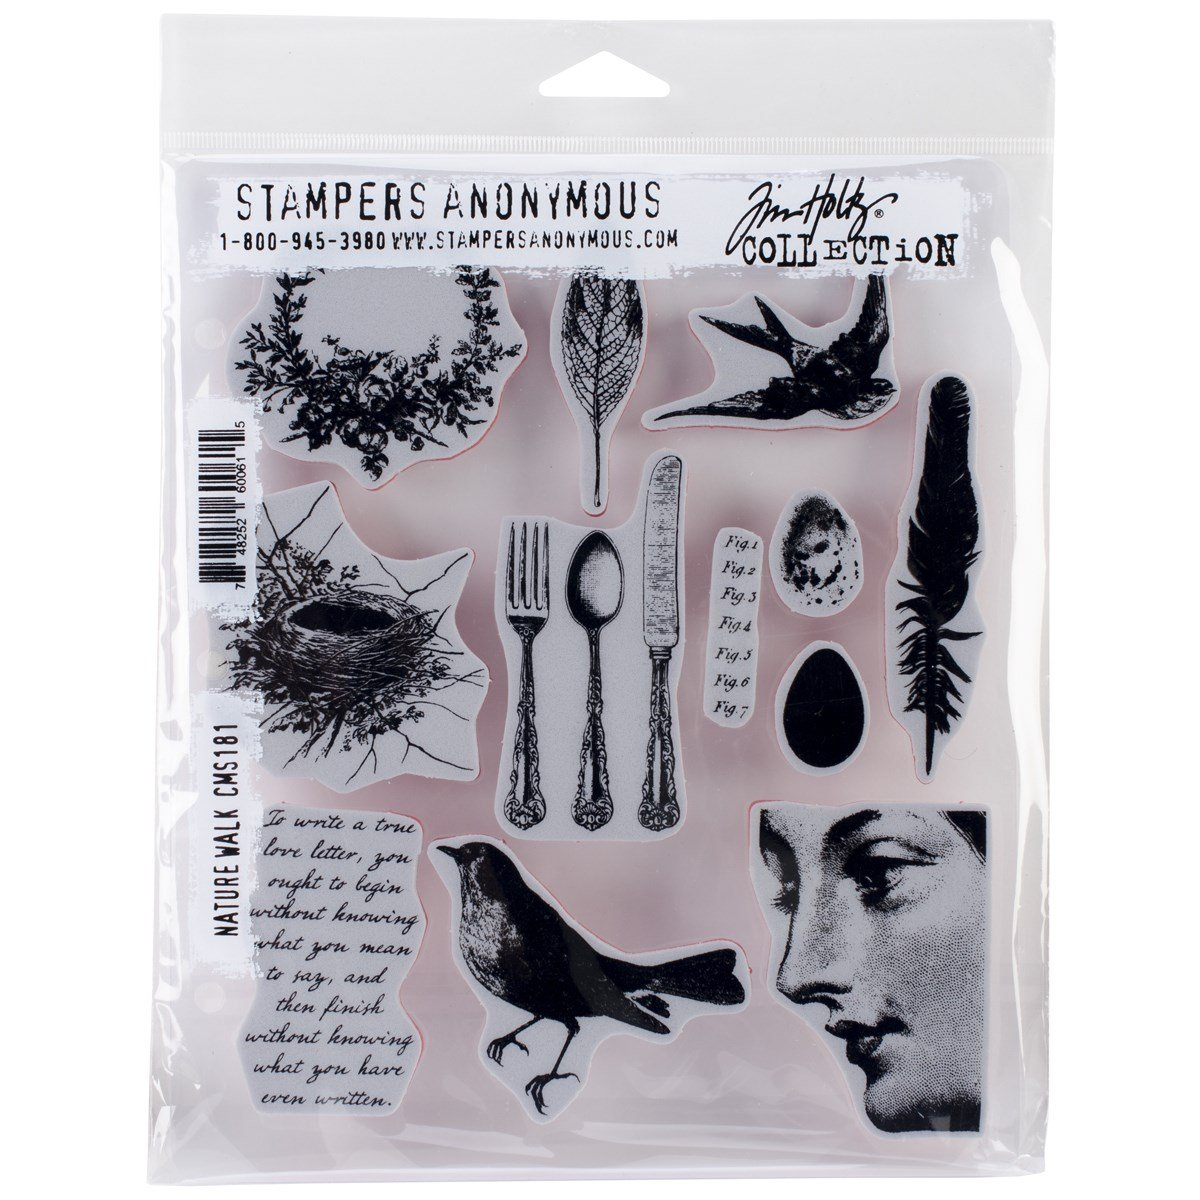 Stampers Anonymous Tim Holtz Cling Rubber Stamp Set, 7-Inch by 8.5-Inch, Nature Walk